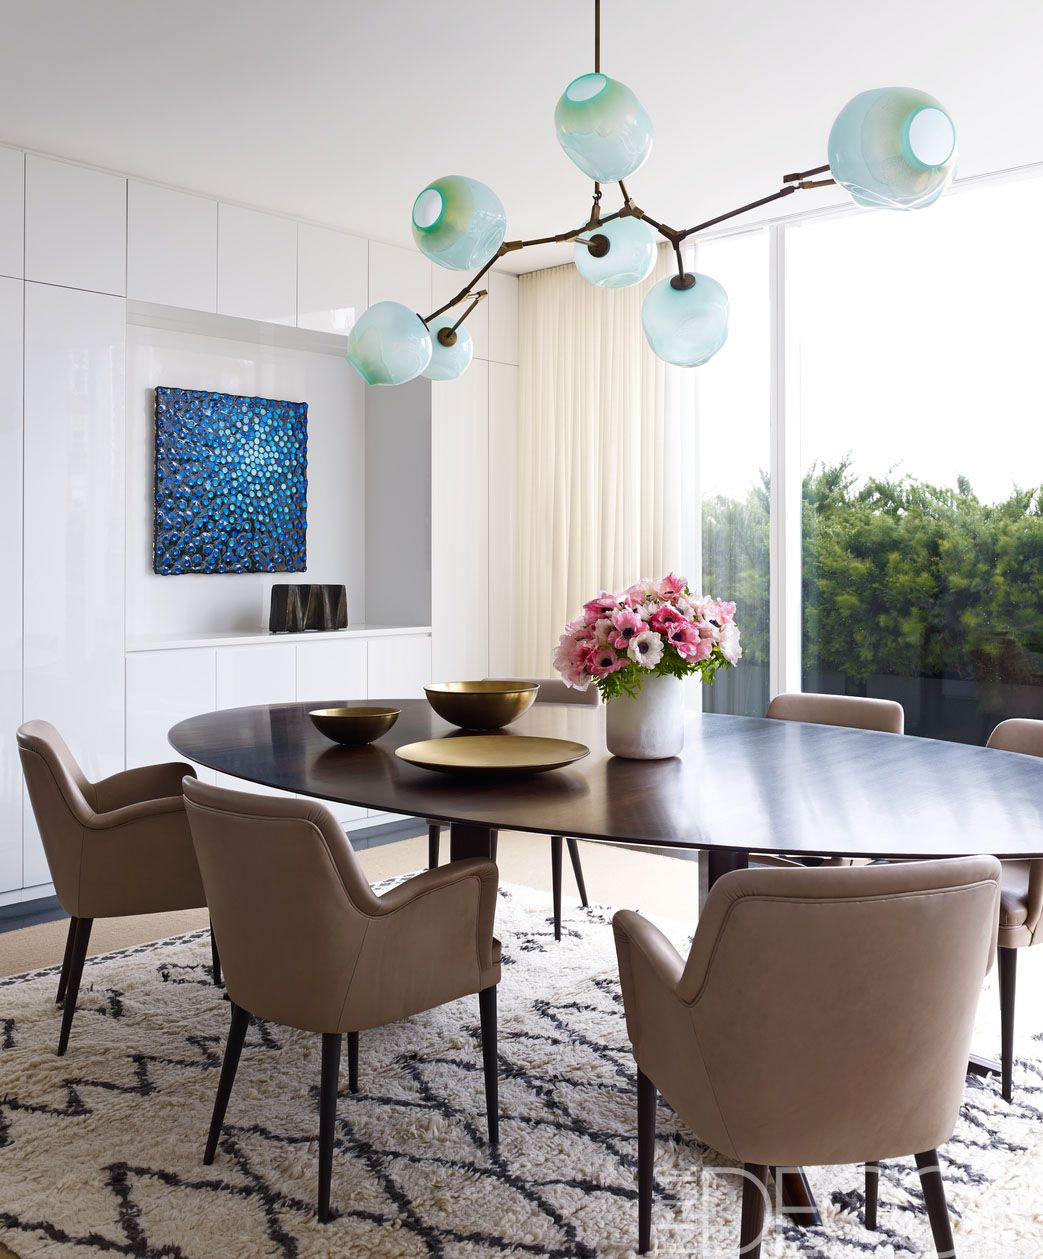 25 modern dining room decorating ideas contemporary dining room furniture - Modern Dining Room Decor Ideas